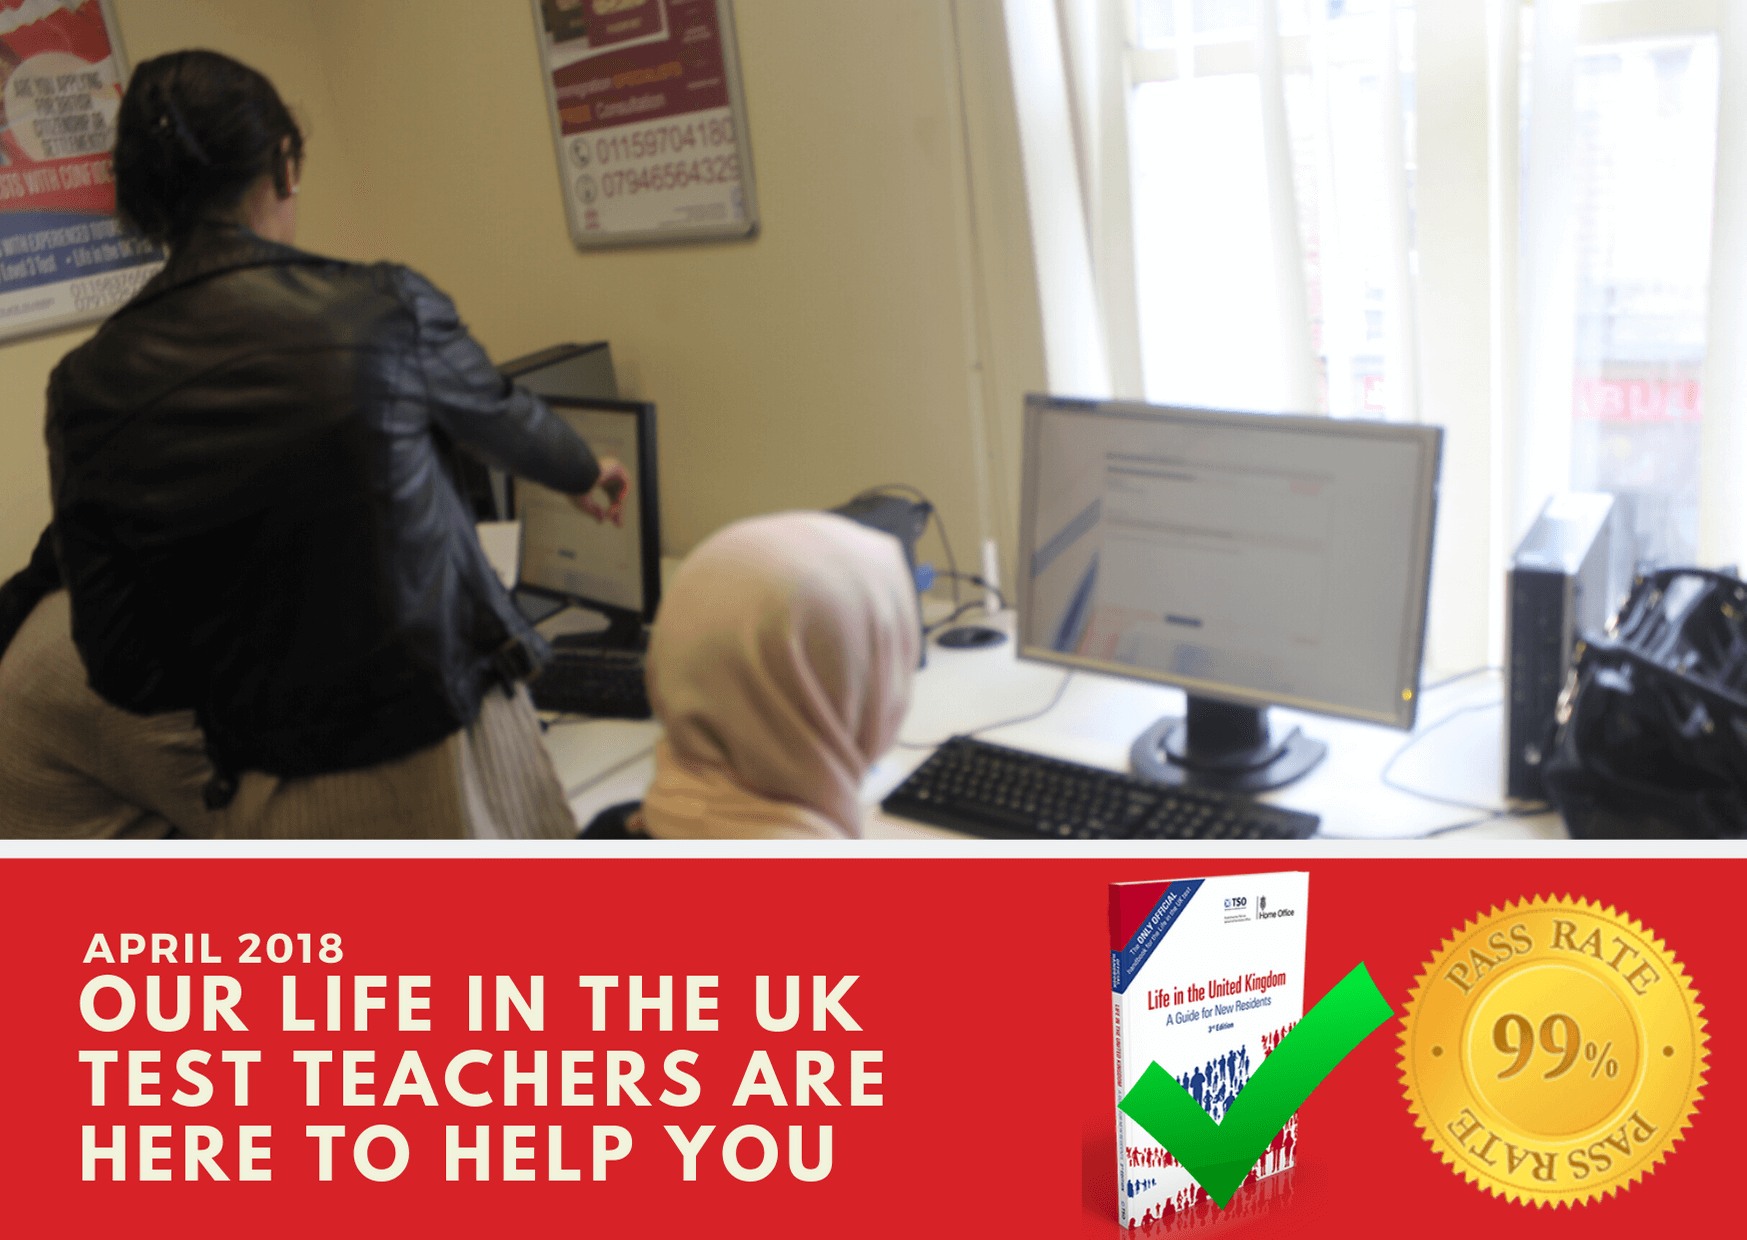 Life in the Uk test training to help students pass their exams